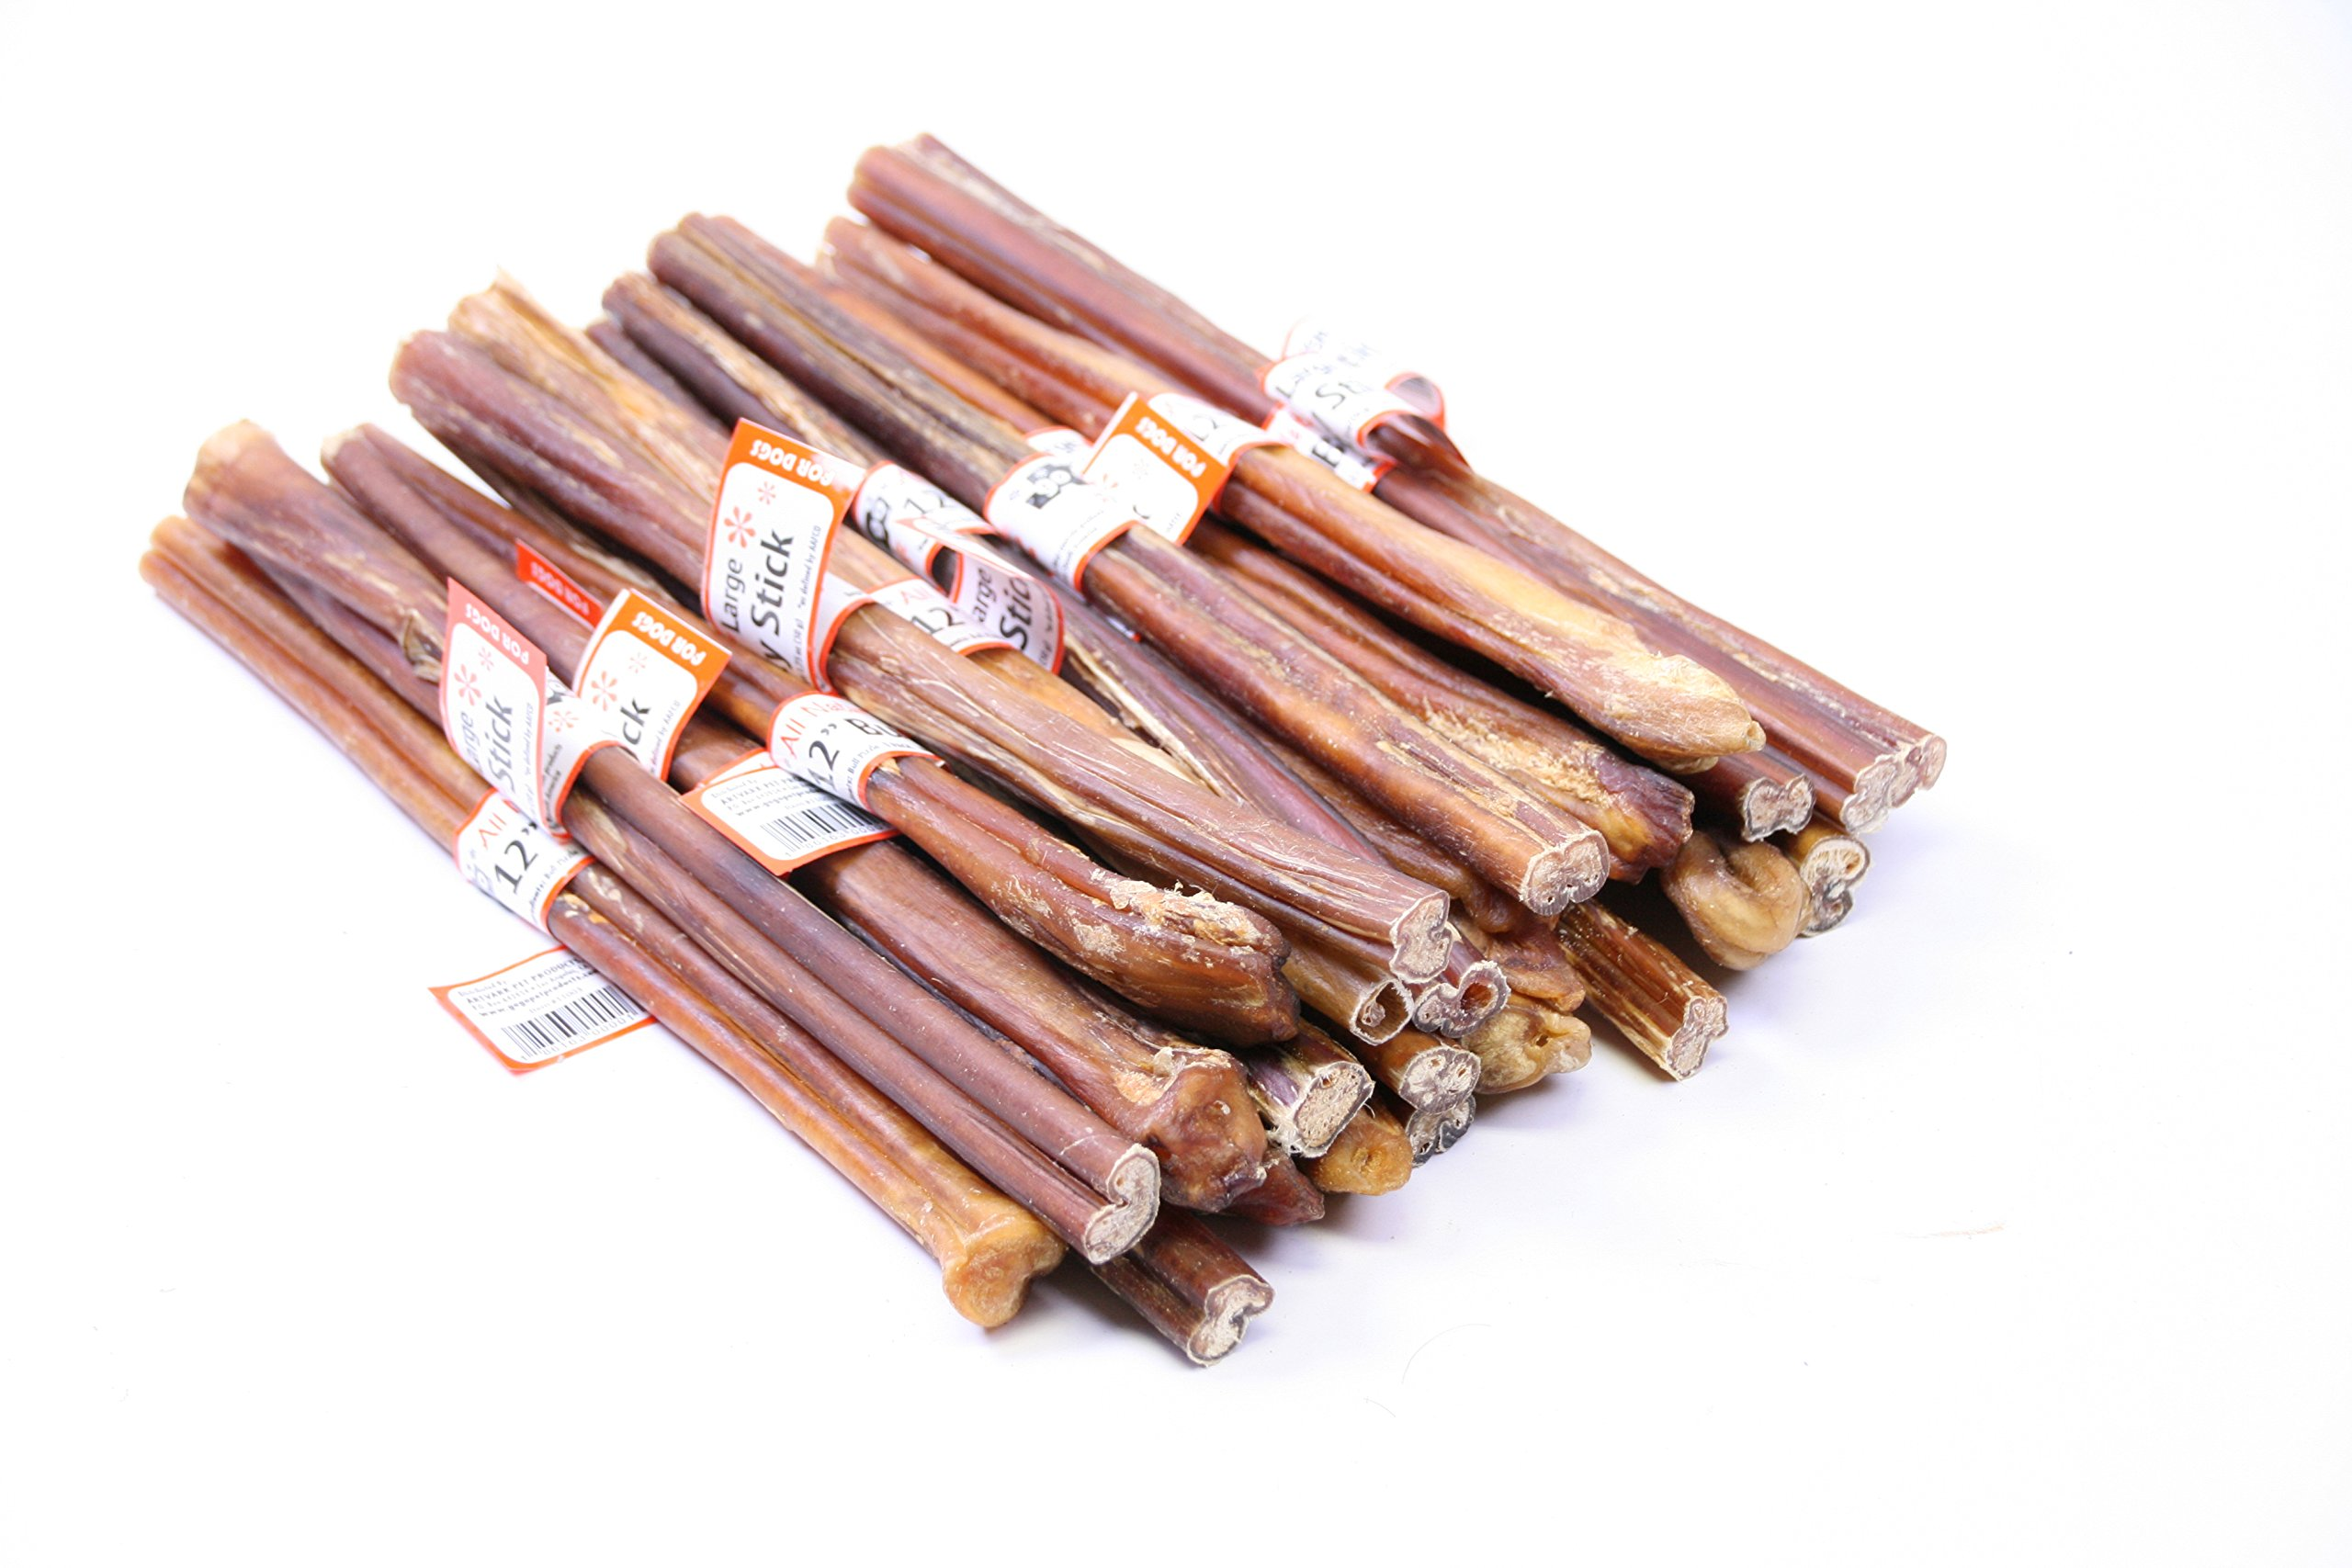 GoGo Large Bully Sticks - 12 Inch - 12 pack by GoGo Pet Products (Image #2)